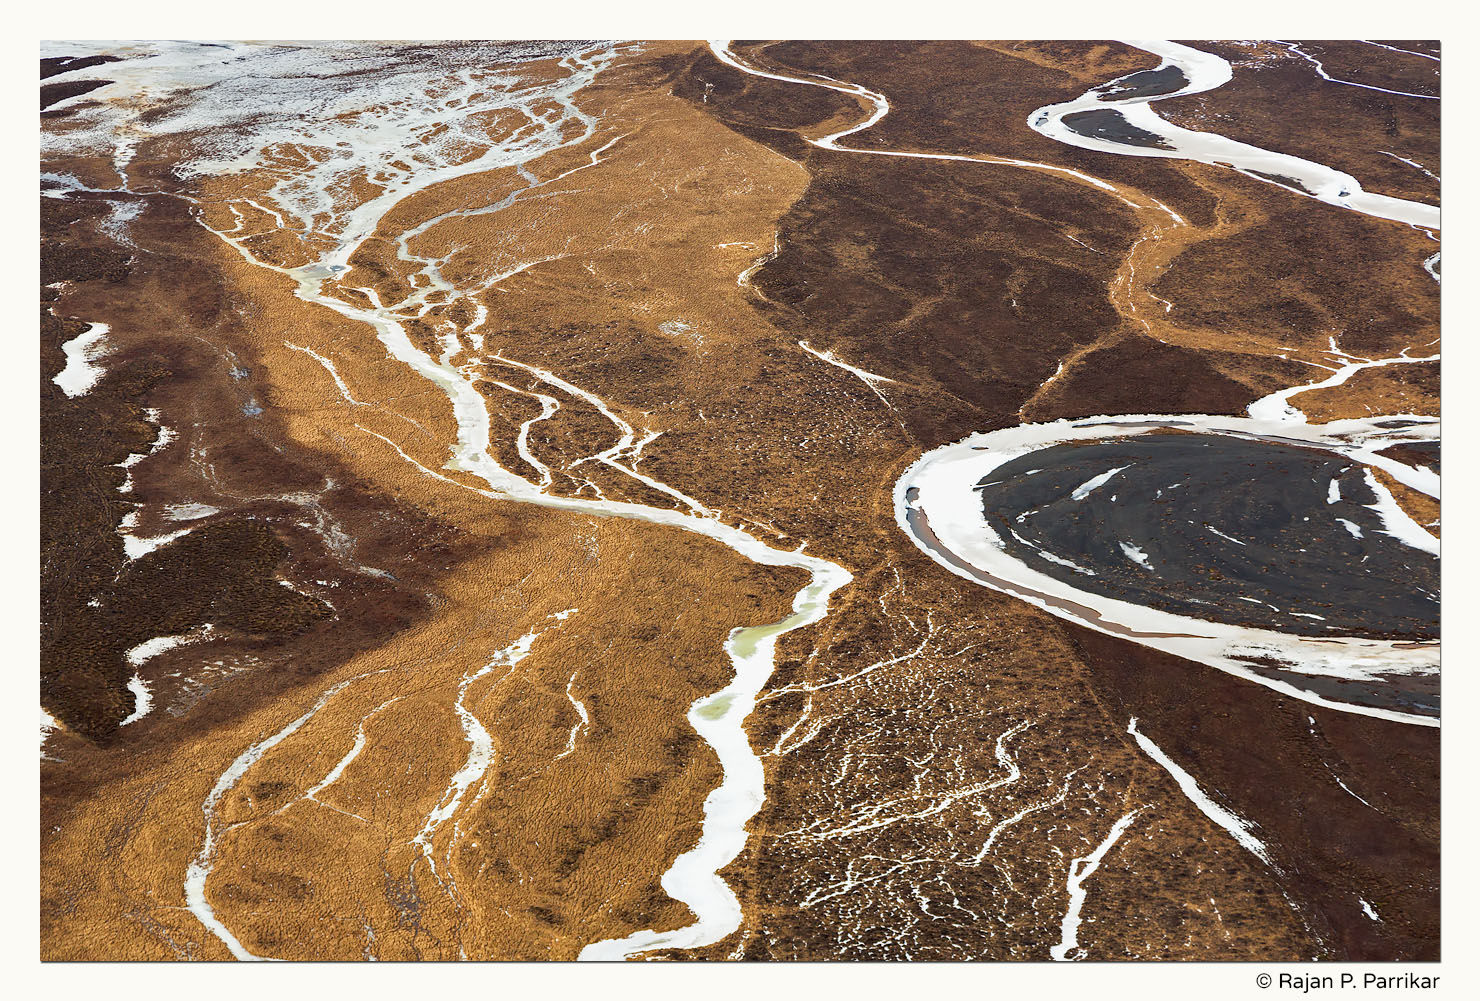 Patterns of Héraðssandur from the air, Iceland